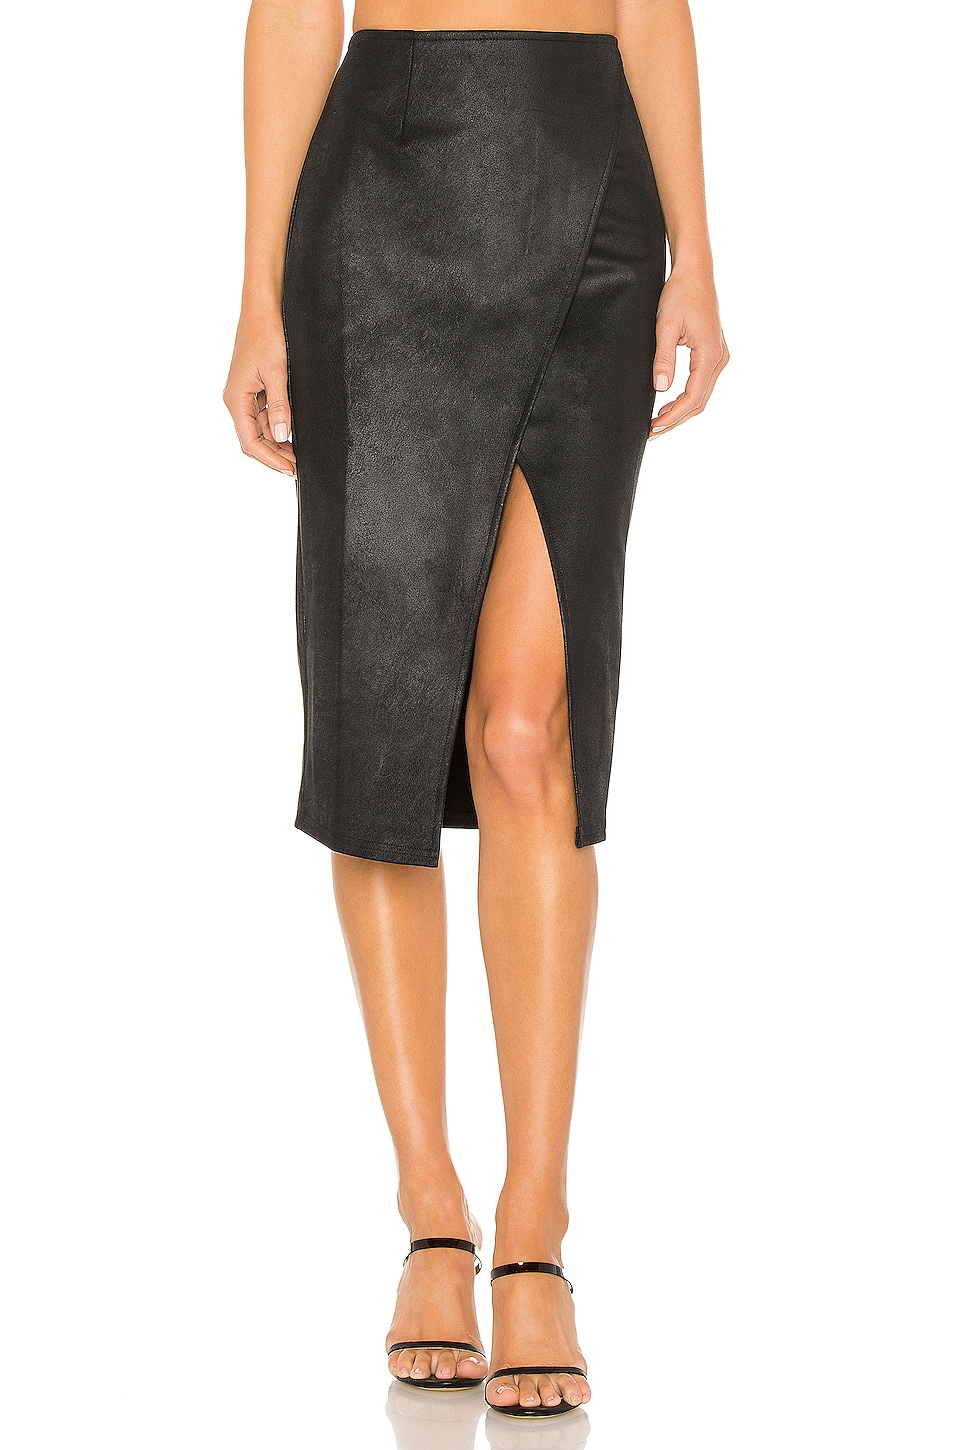 Free People Whitney Vegan Leather Pencil Skirt in Black